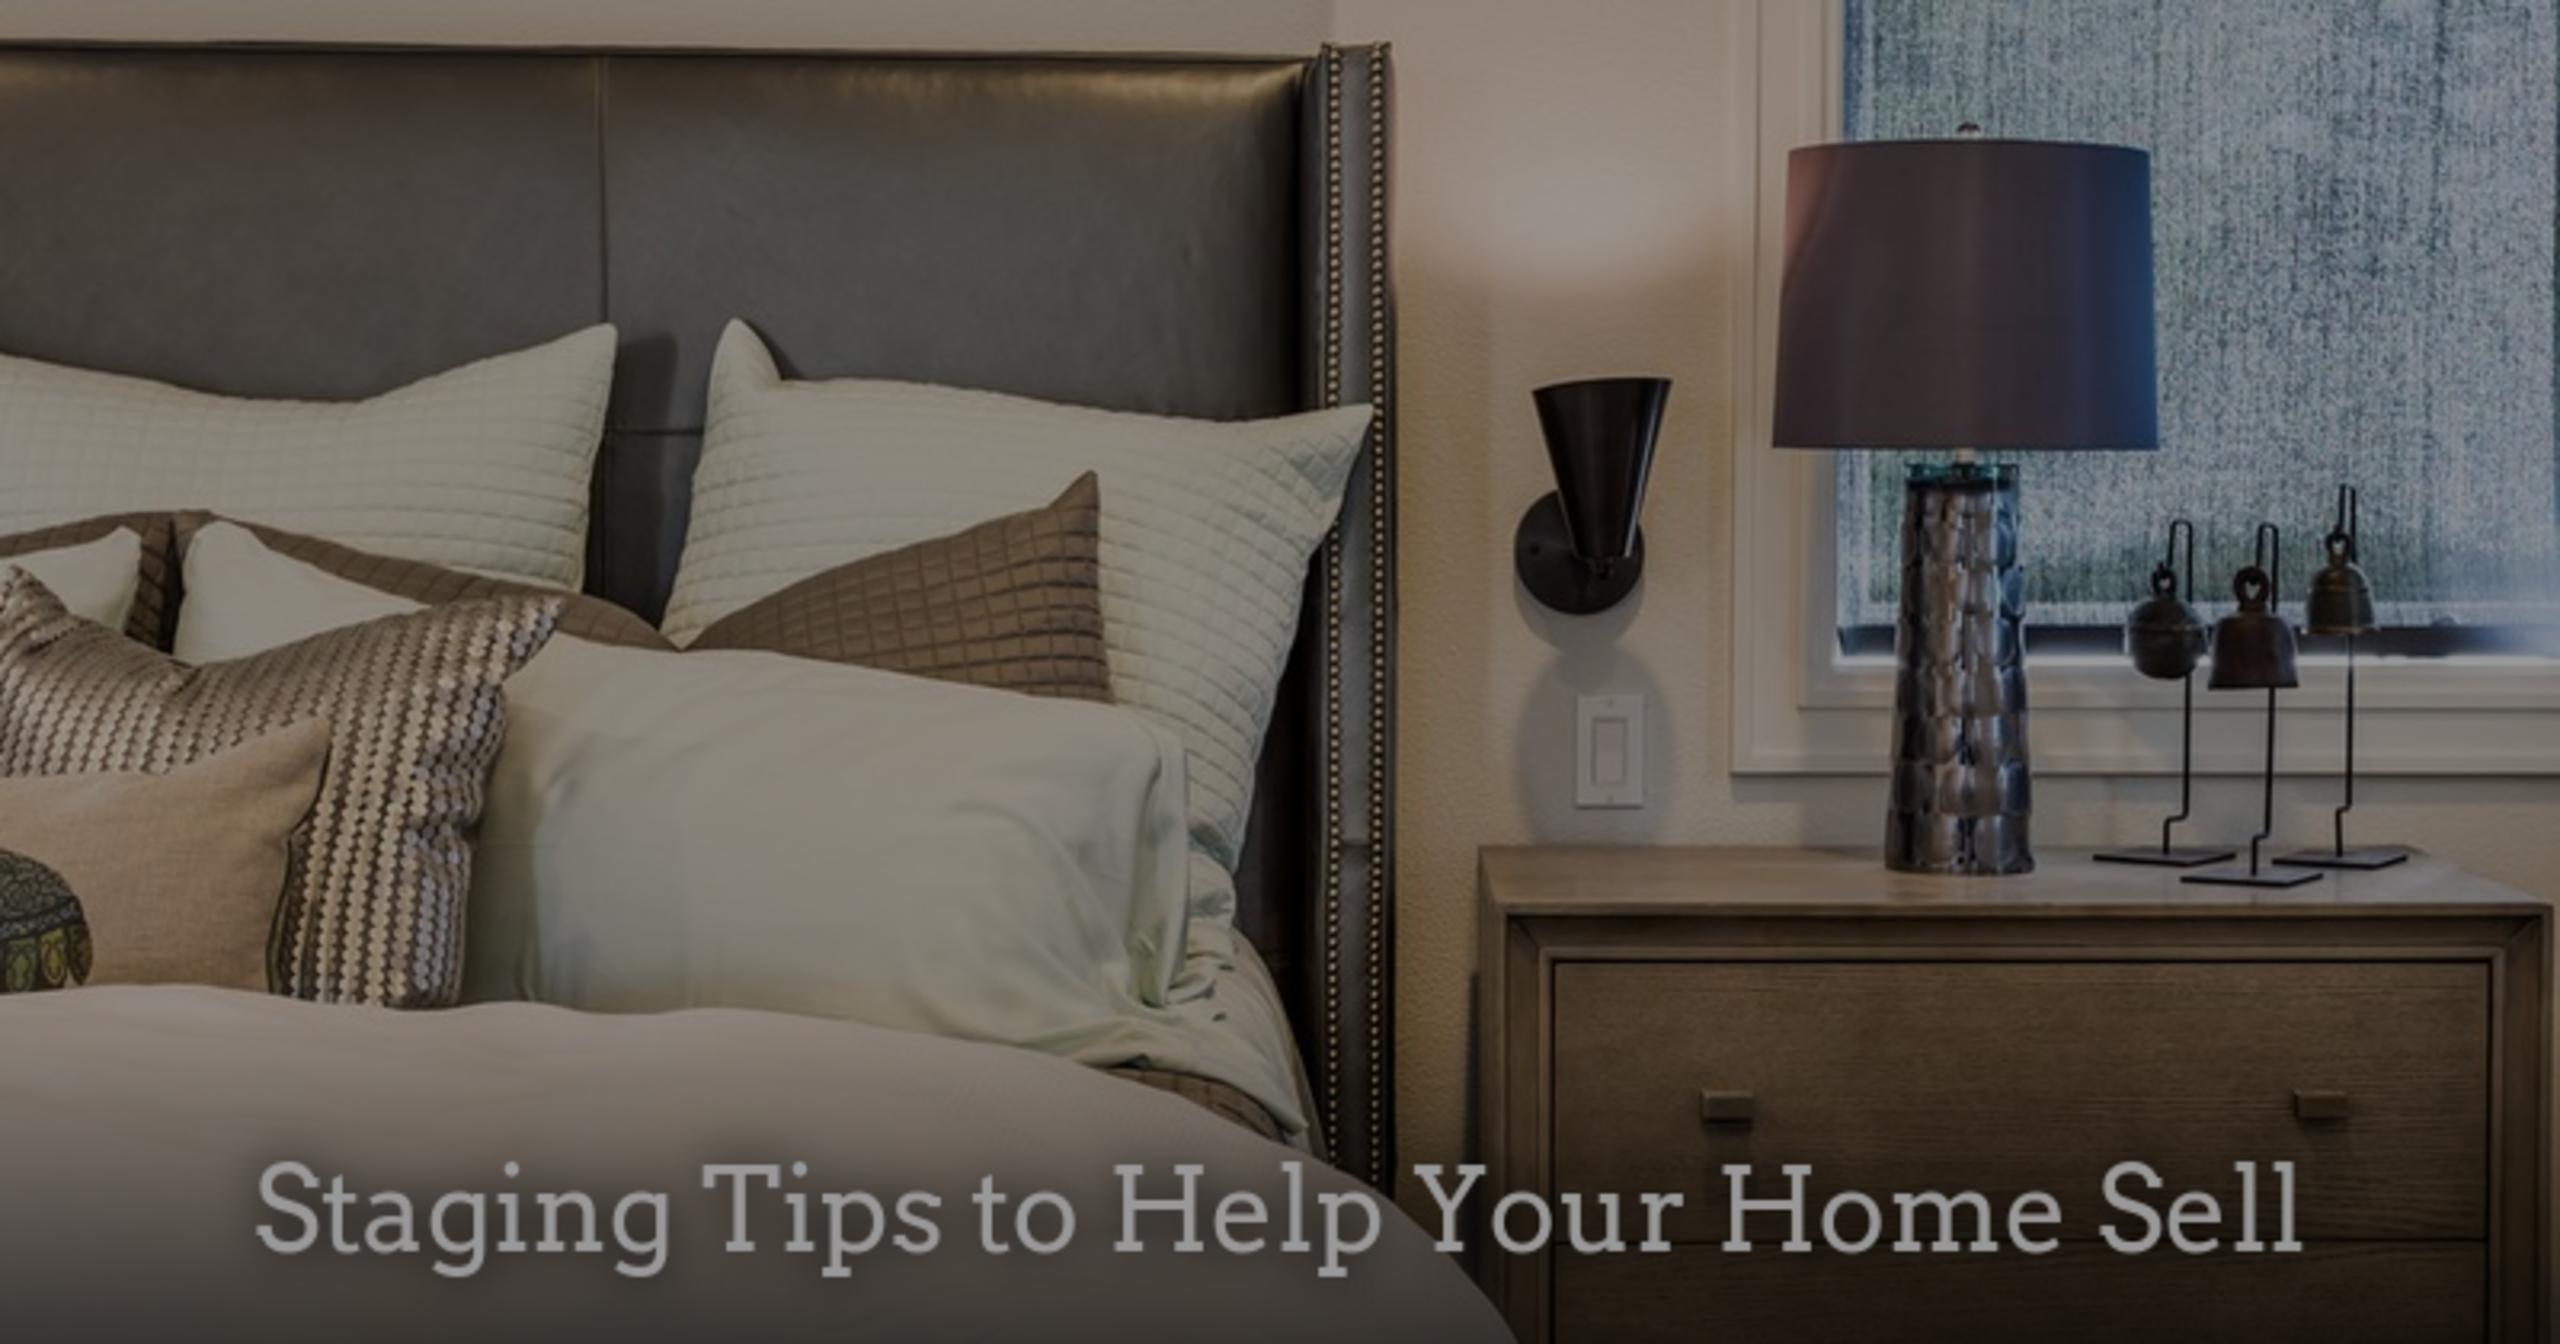 Staging Tips to Help Your Home Sell